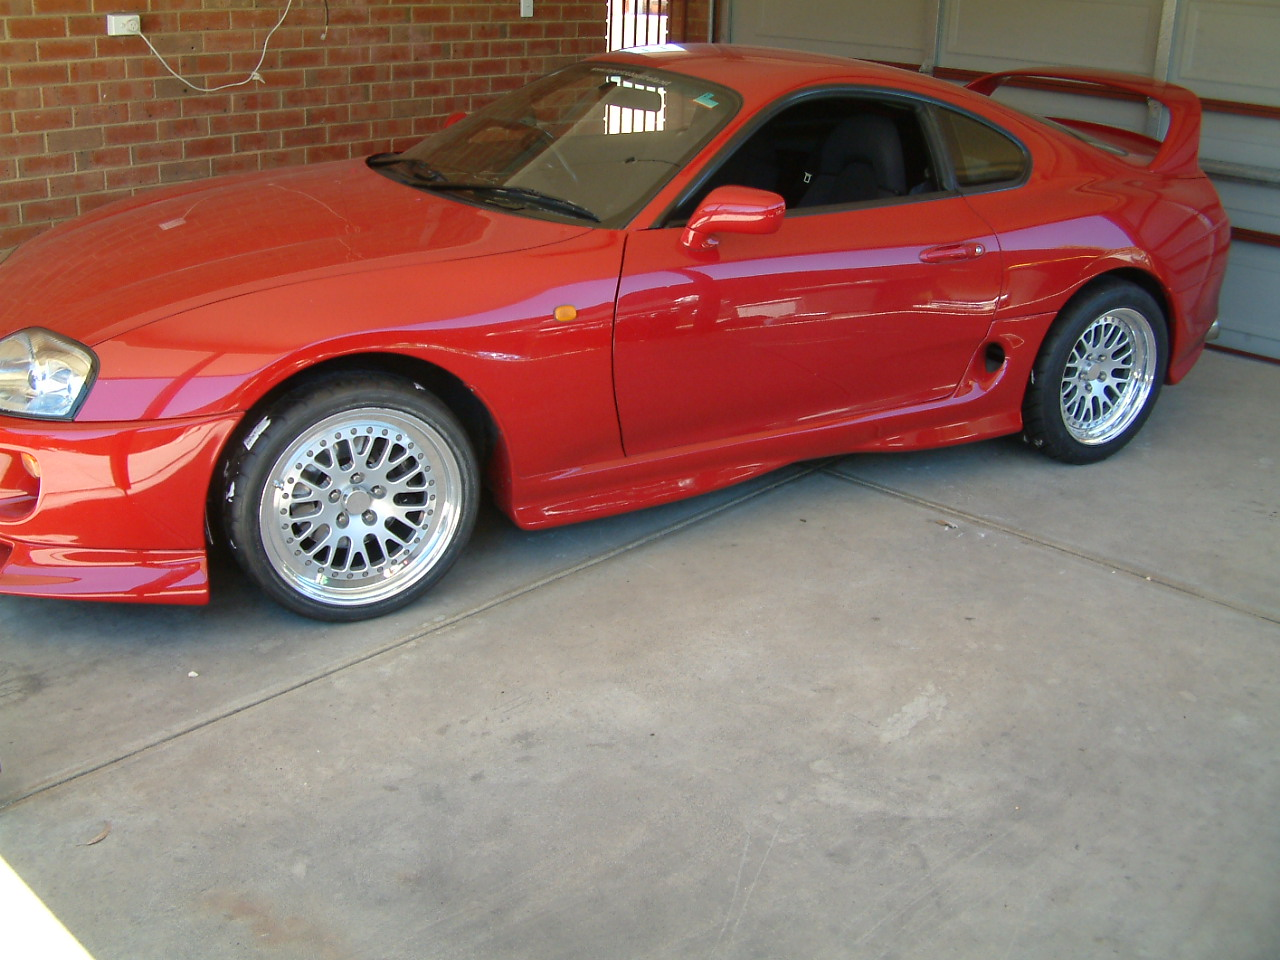 photo 4 Toyota Supra custom wheels CCW Classic 18x10.0, ET +45, tire size 285/35 R18. 17x11.5 ET+48 355/30 R17